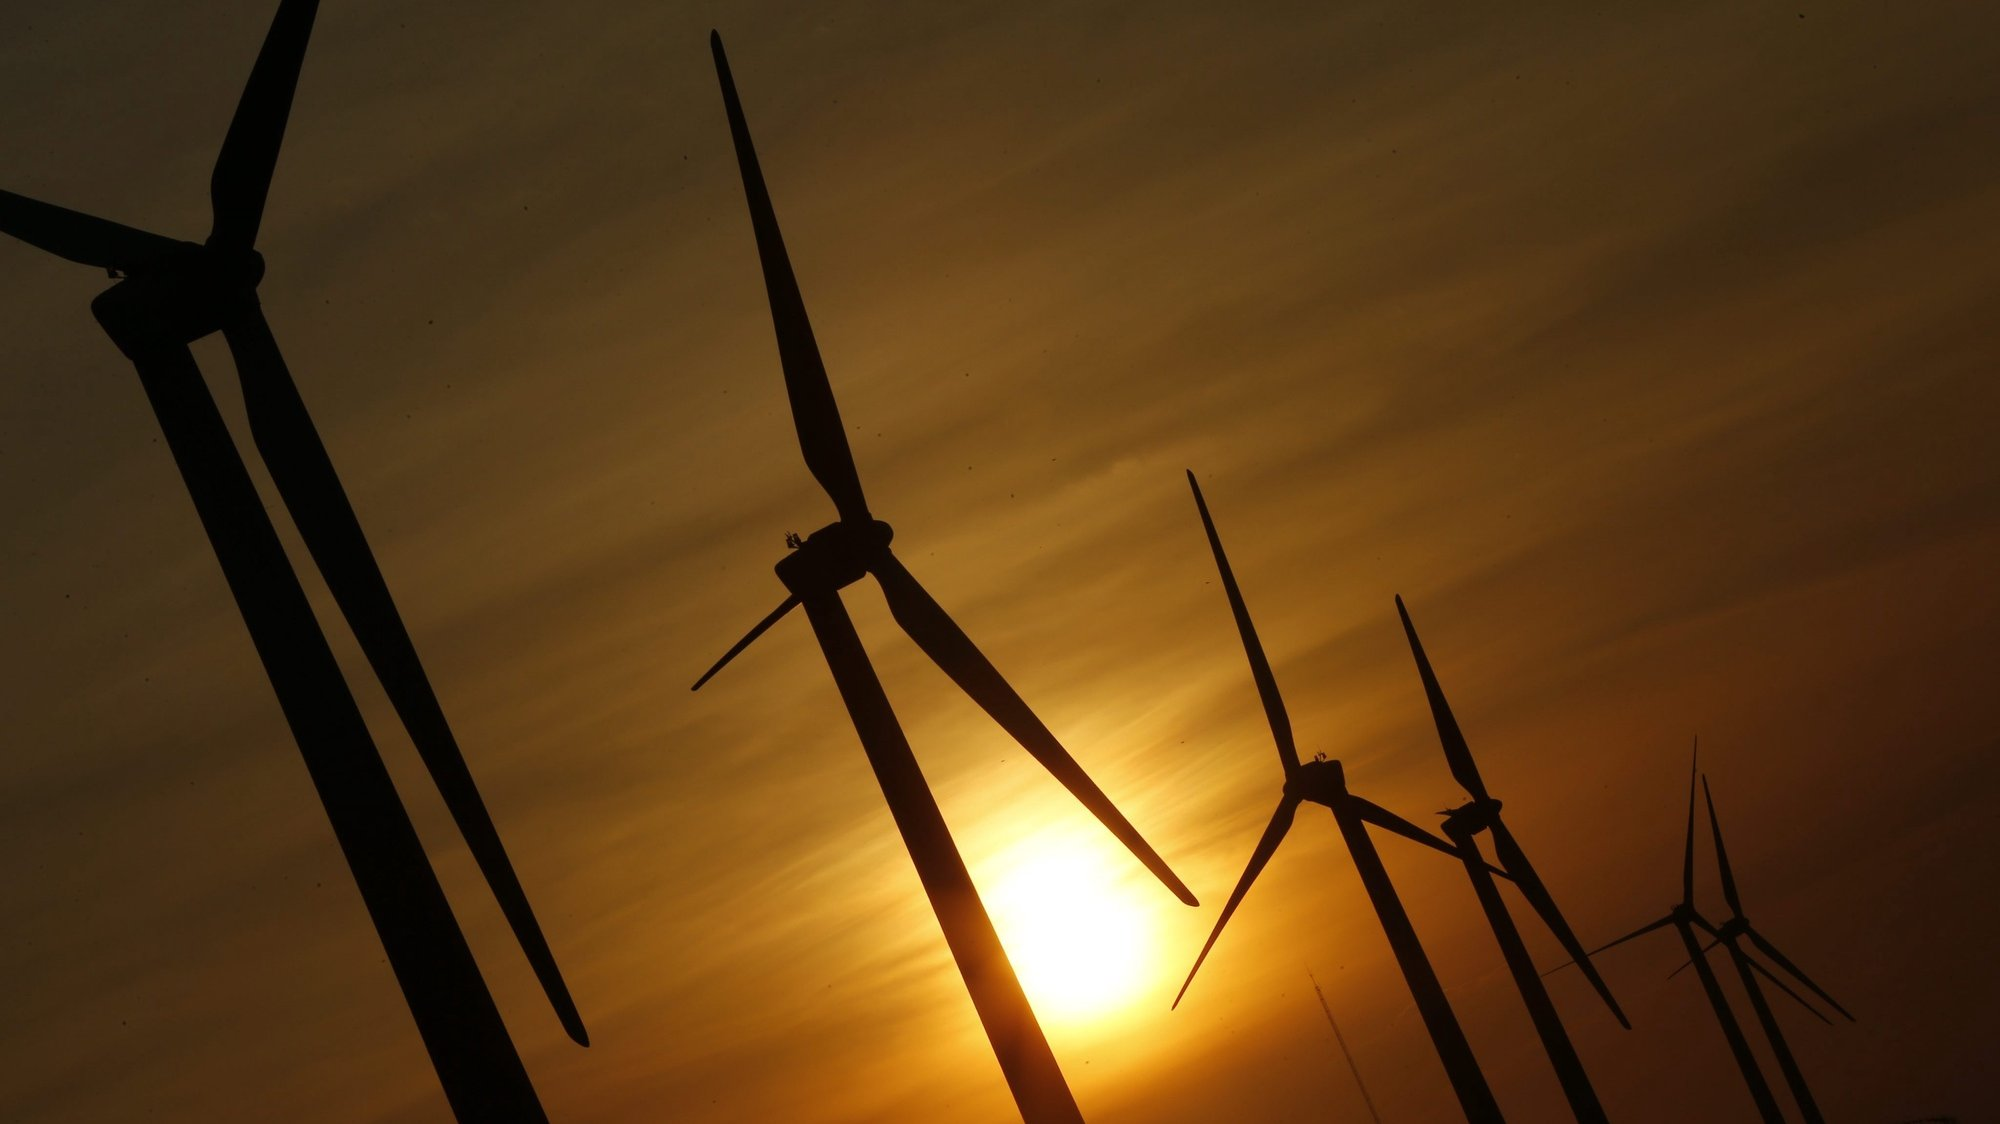 epa05378795 A picture made available on 20 June 2016 shows wind turbines during sunset in Taichung, Taiwan, 19 June 2016. As of 2016 there are 326 wind turbines operating in Taiwan. The first hydropower plant opened in Taiwan in June 1995. Taiwan's Photovoltaic power generation project was divided into two stages, the first stage was completed in December 2011 and the second stage in December 2014. By the year 2020 the legislature of Taiwan plans to increase its solar energy output to 4,500 Megawatt, as public demands for green energy sources rise.  EPA/RITCHIE B. TONGO